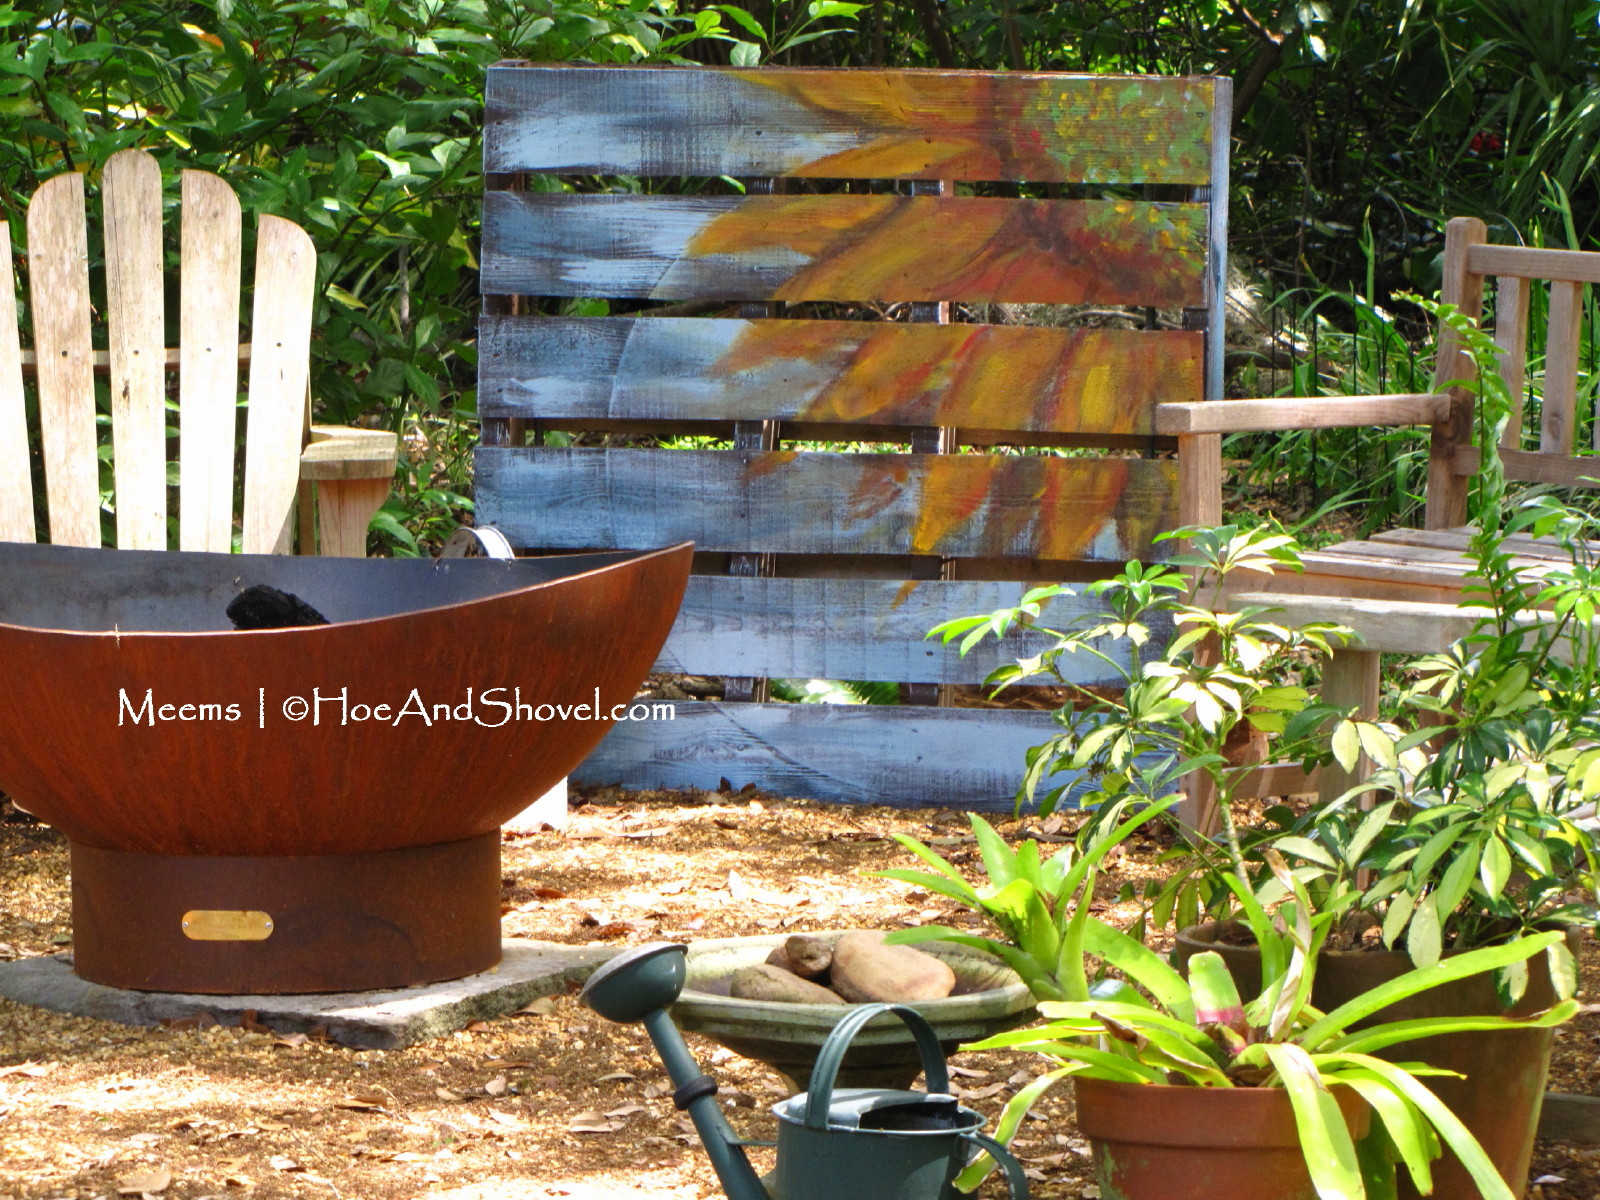 Hoe and shovel upcycled wooden pallet garden art upcycled wooden pallet garden art workwithnaturefo